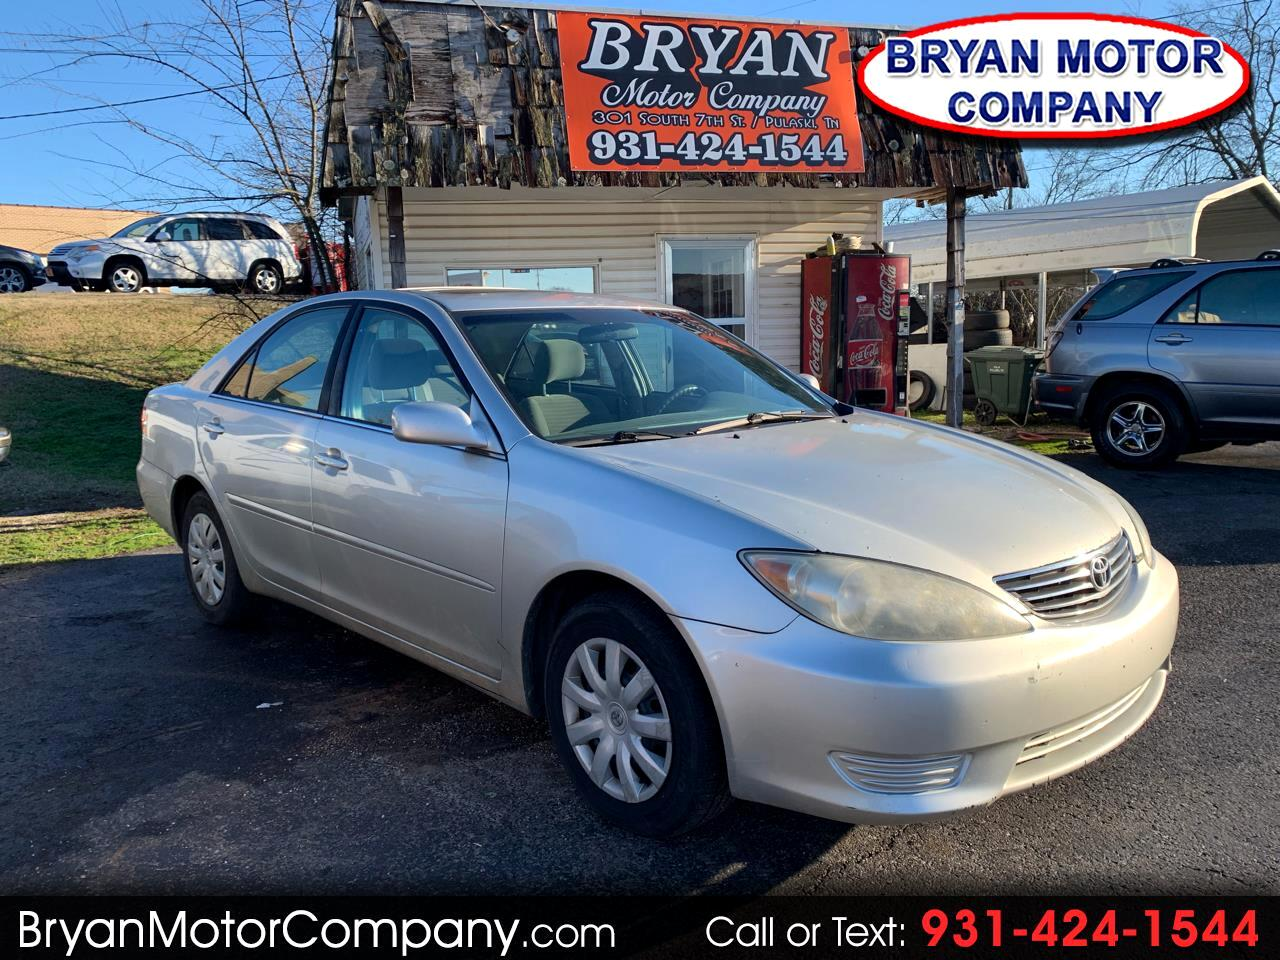 2006 Toyota Camry 4dr Sdn LE Auto (Natl)